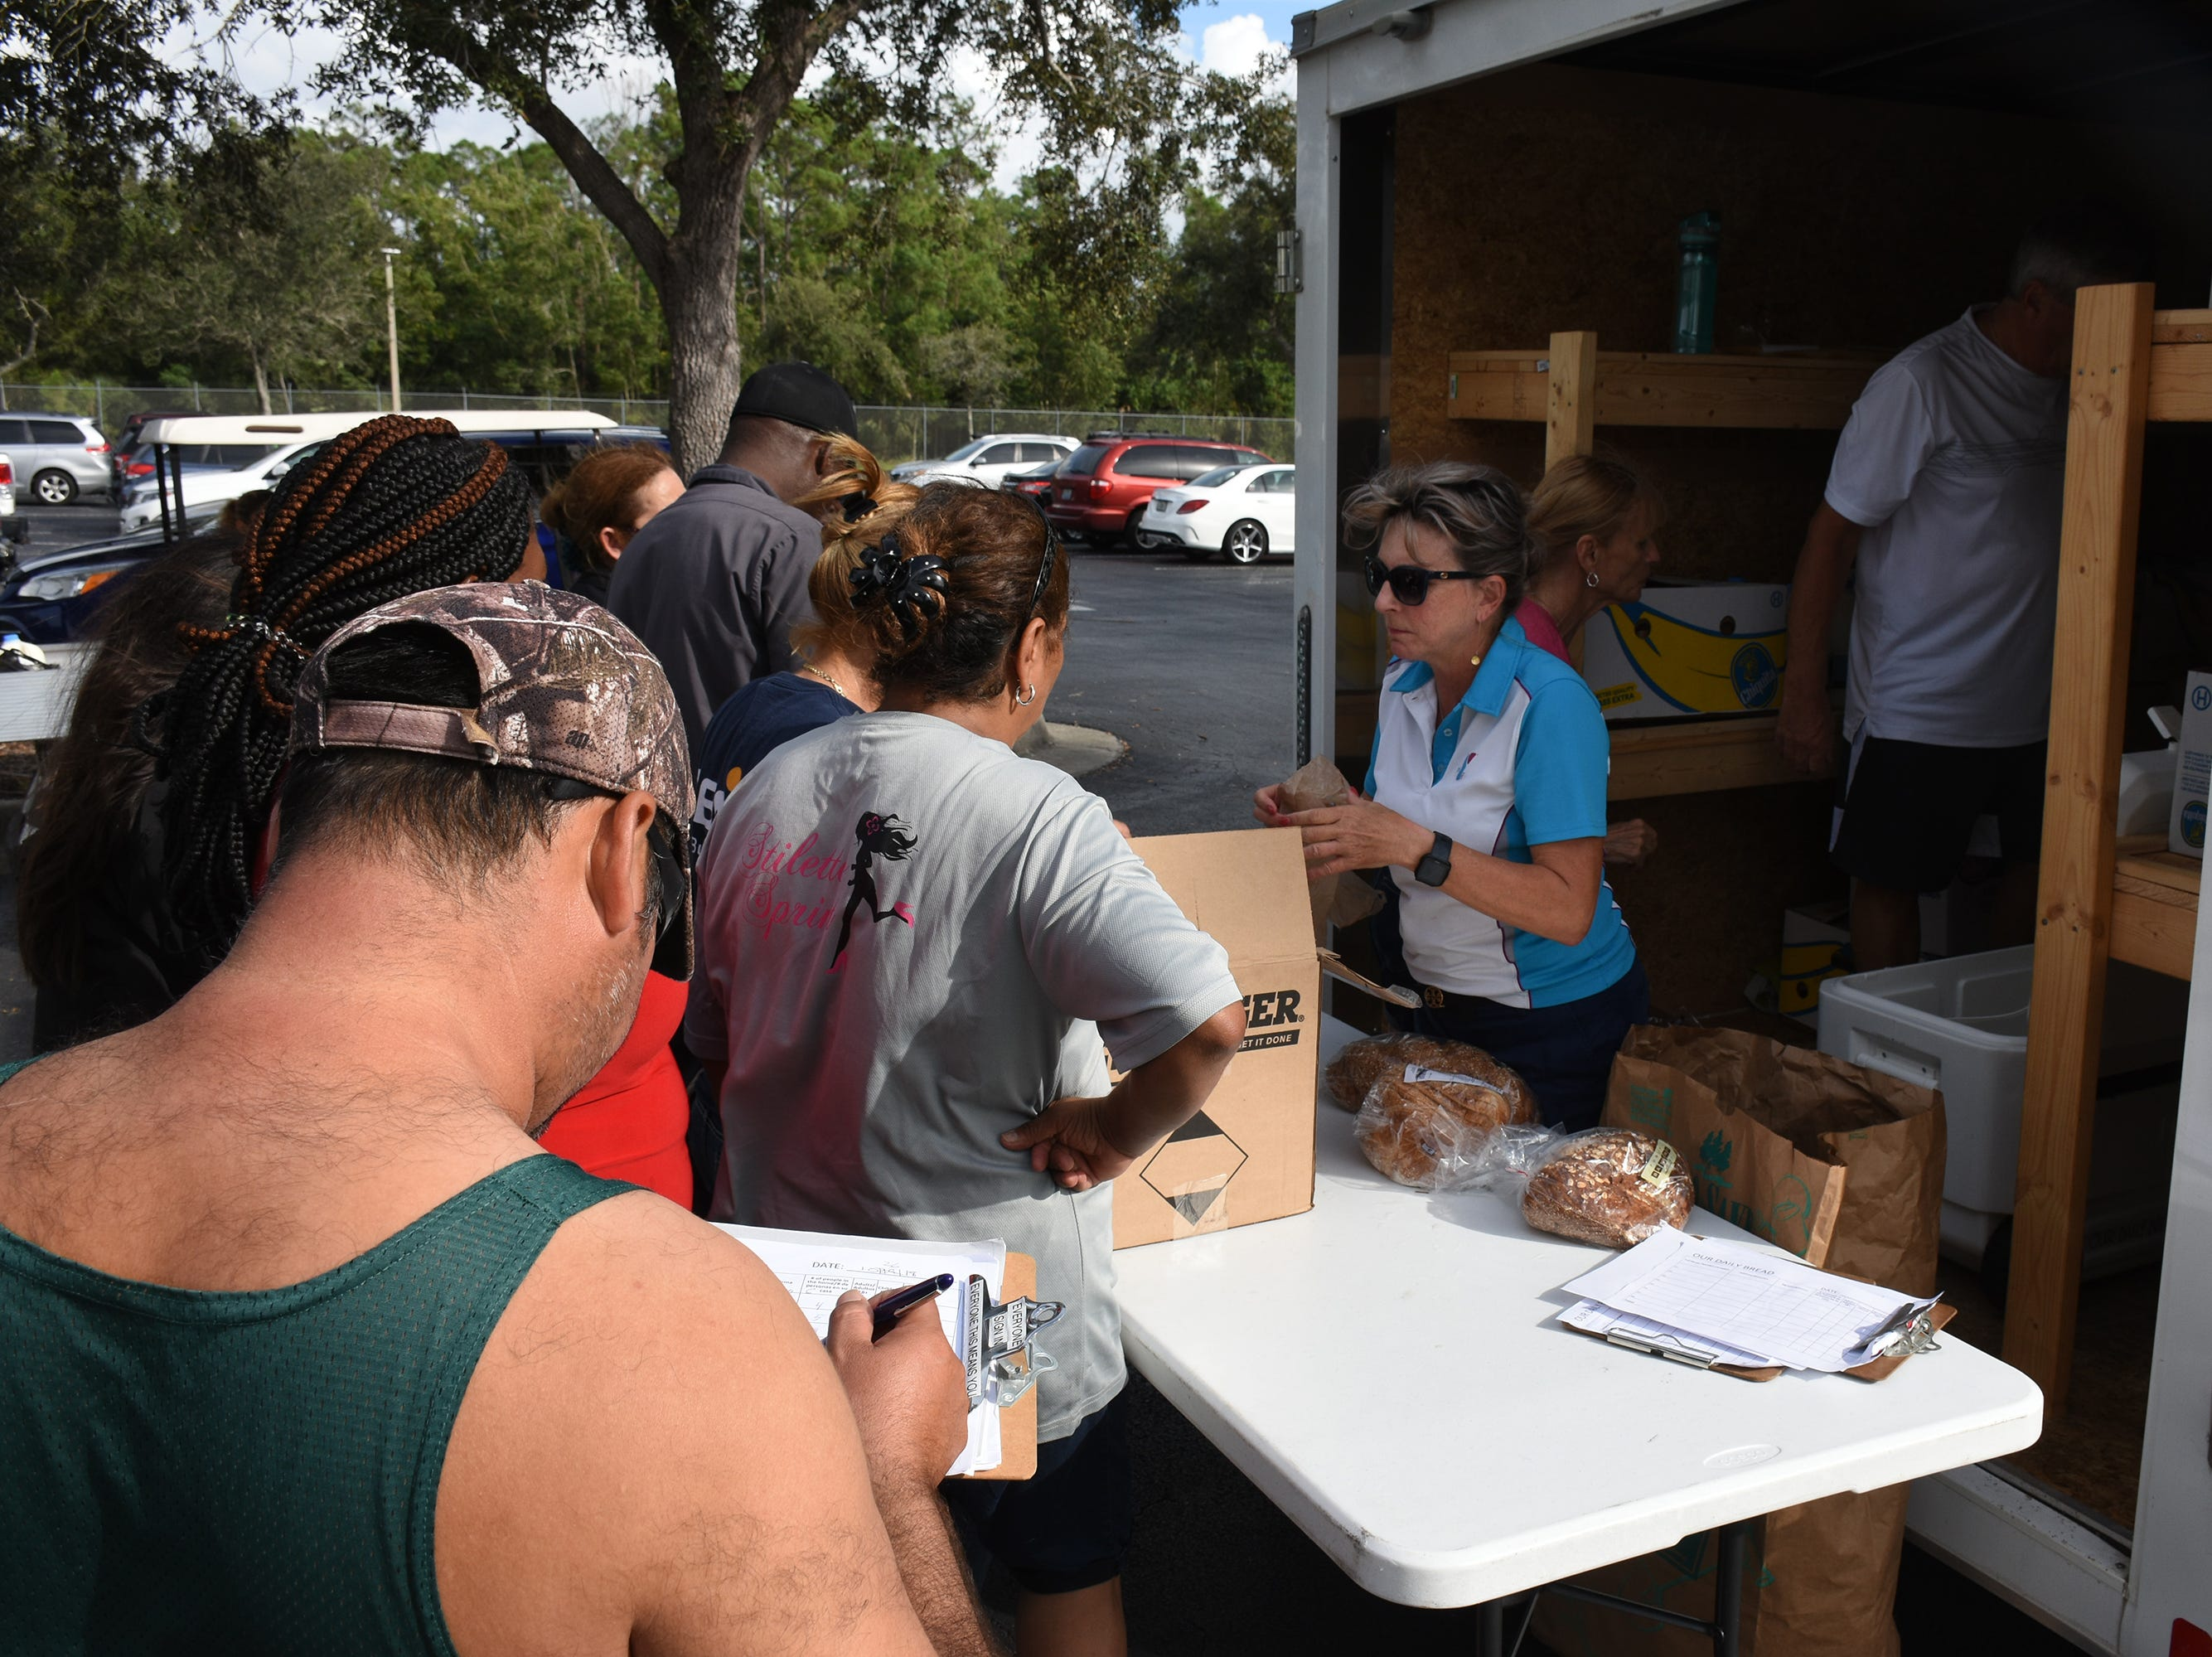 Allyson Richards, right, greets a client as another fills out a simple form. A group of Marco Island volunteers conducts a food pantry Friday afternoon at Manatee Middle School.